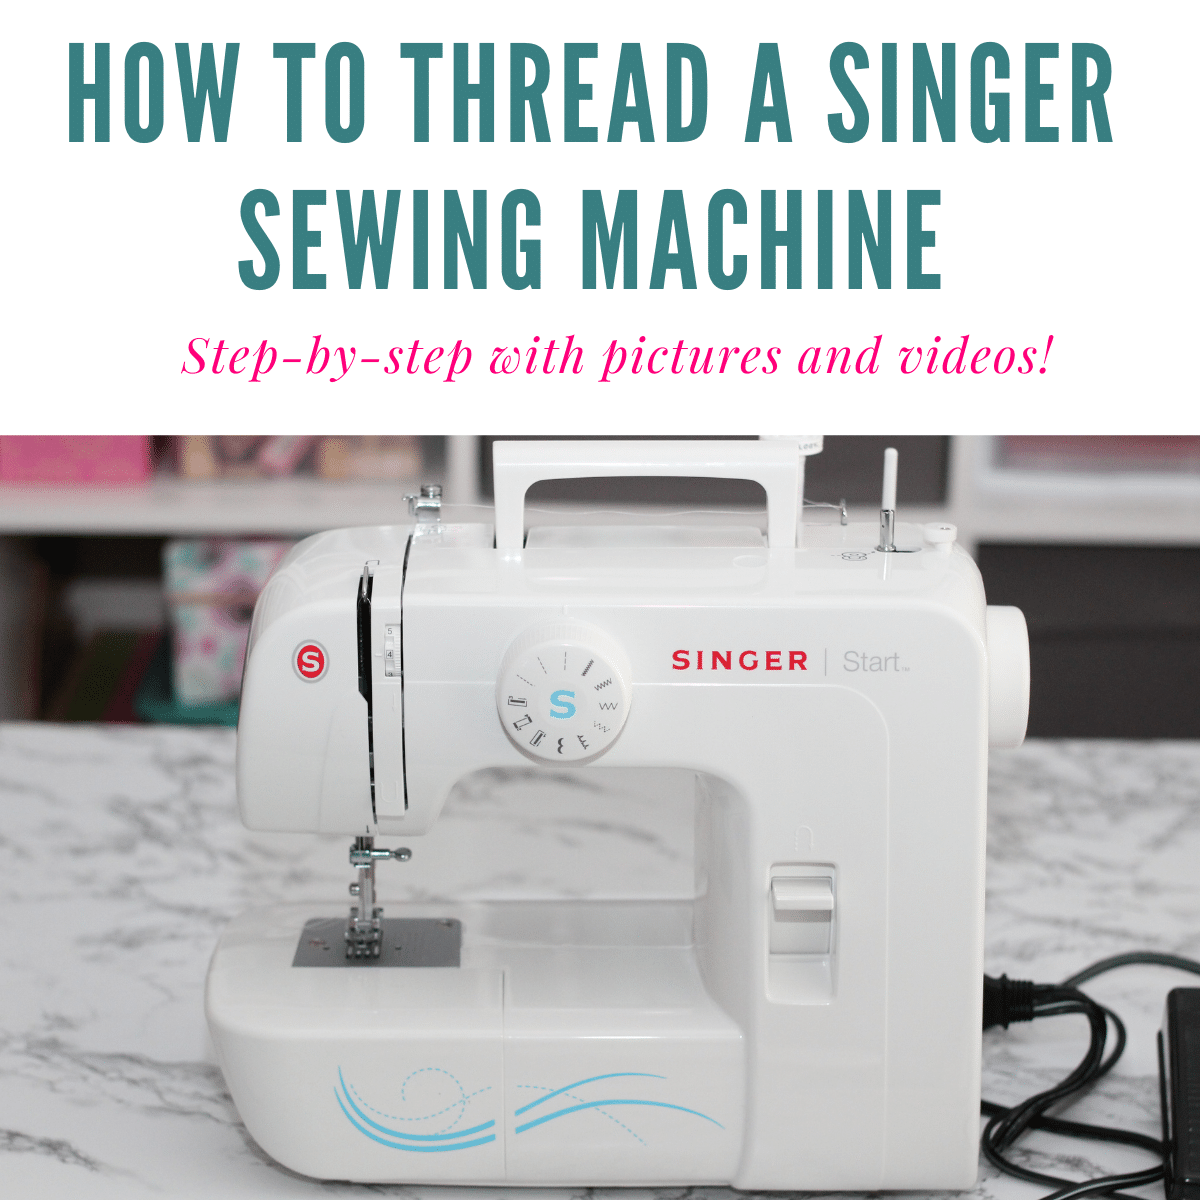 How to Thread a Singer Sewing Machine Easily (Pics+Video)